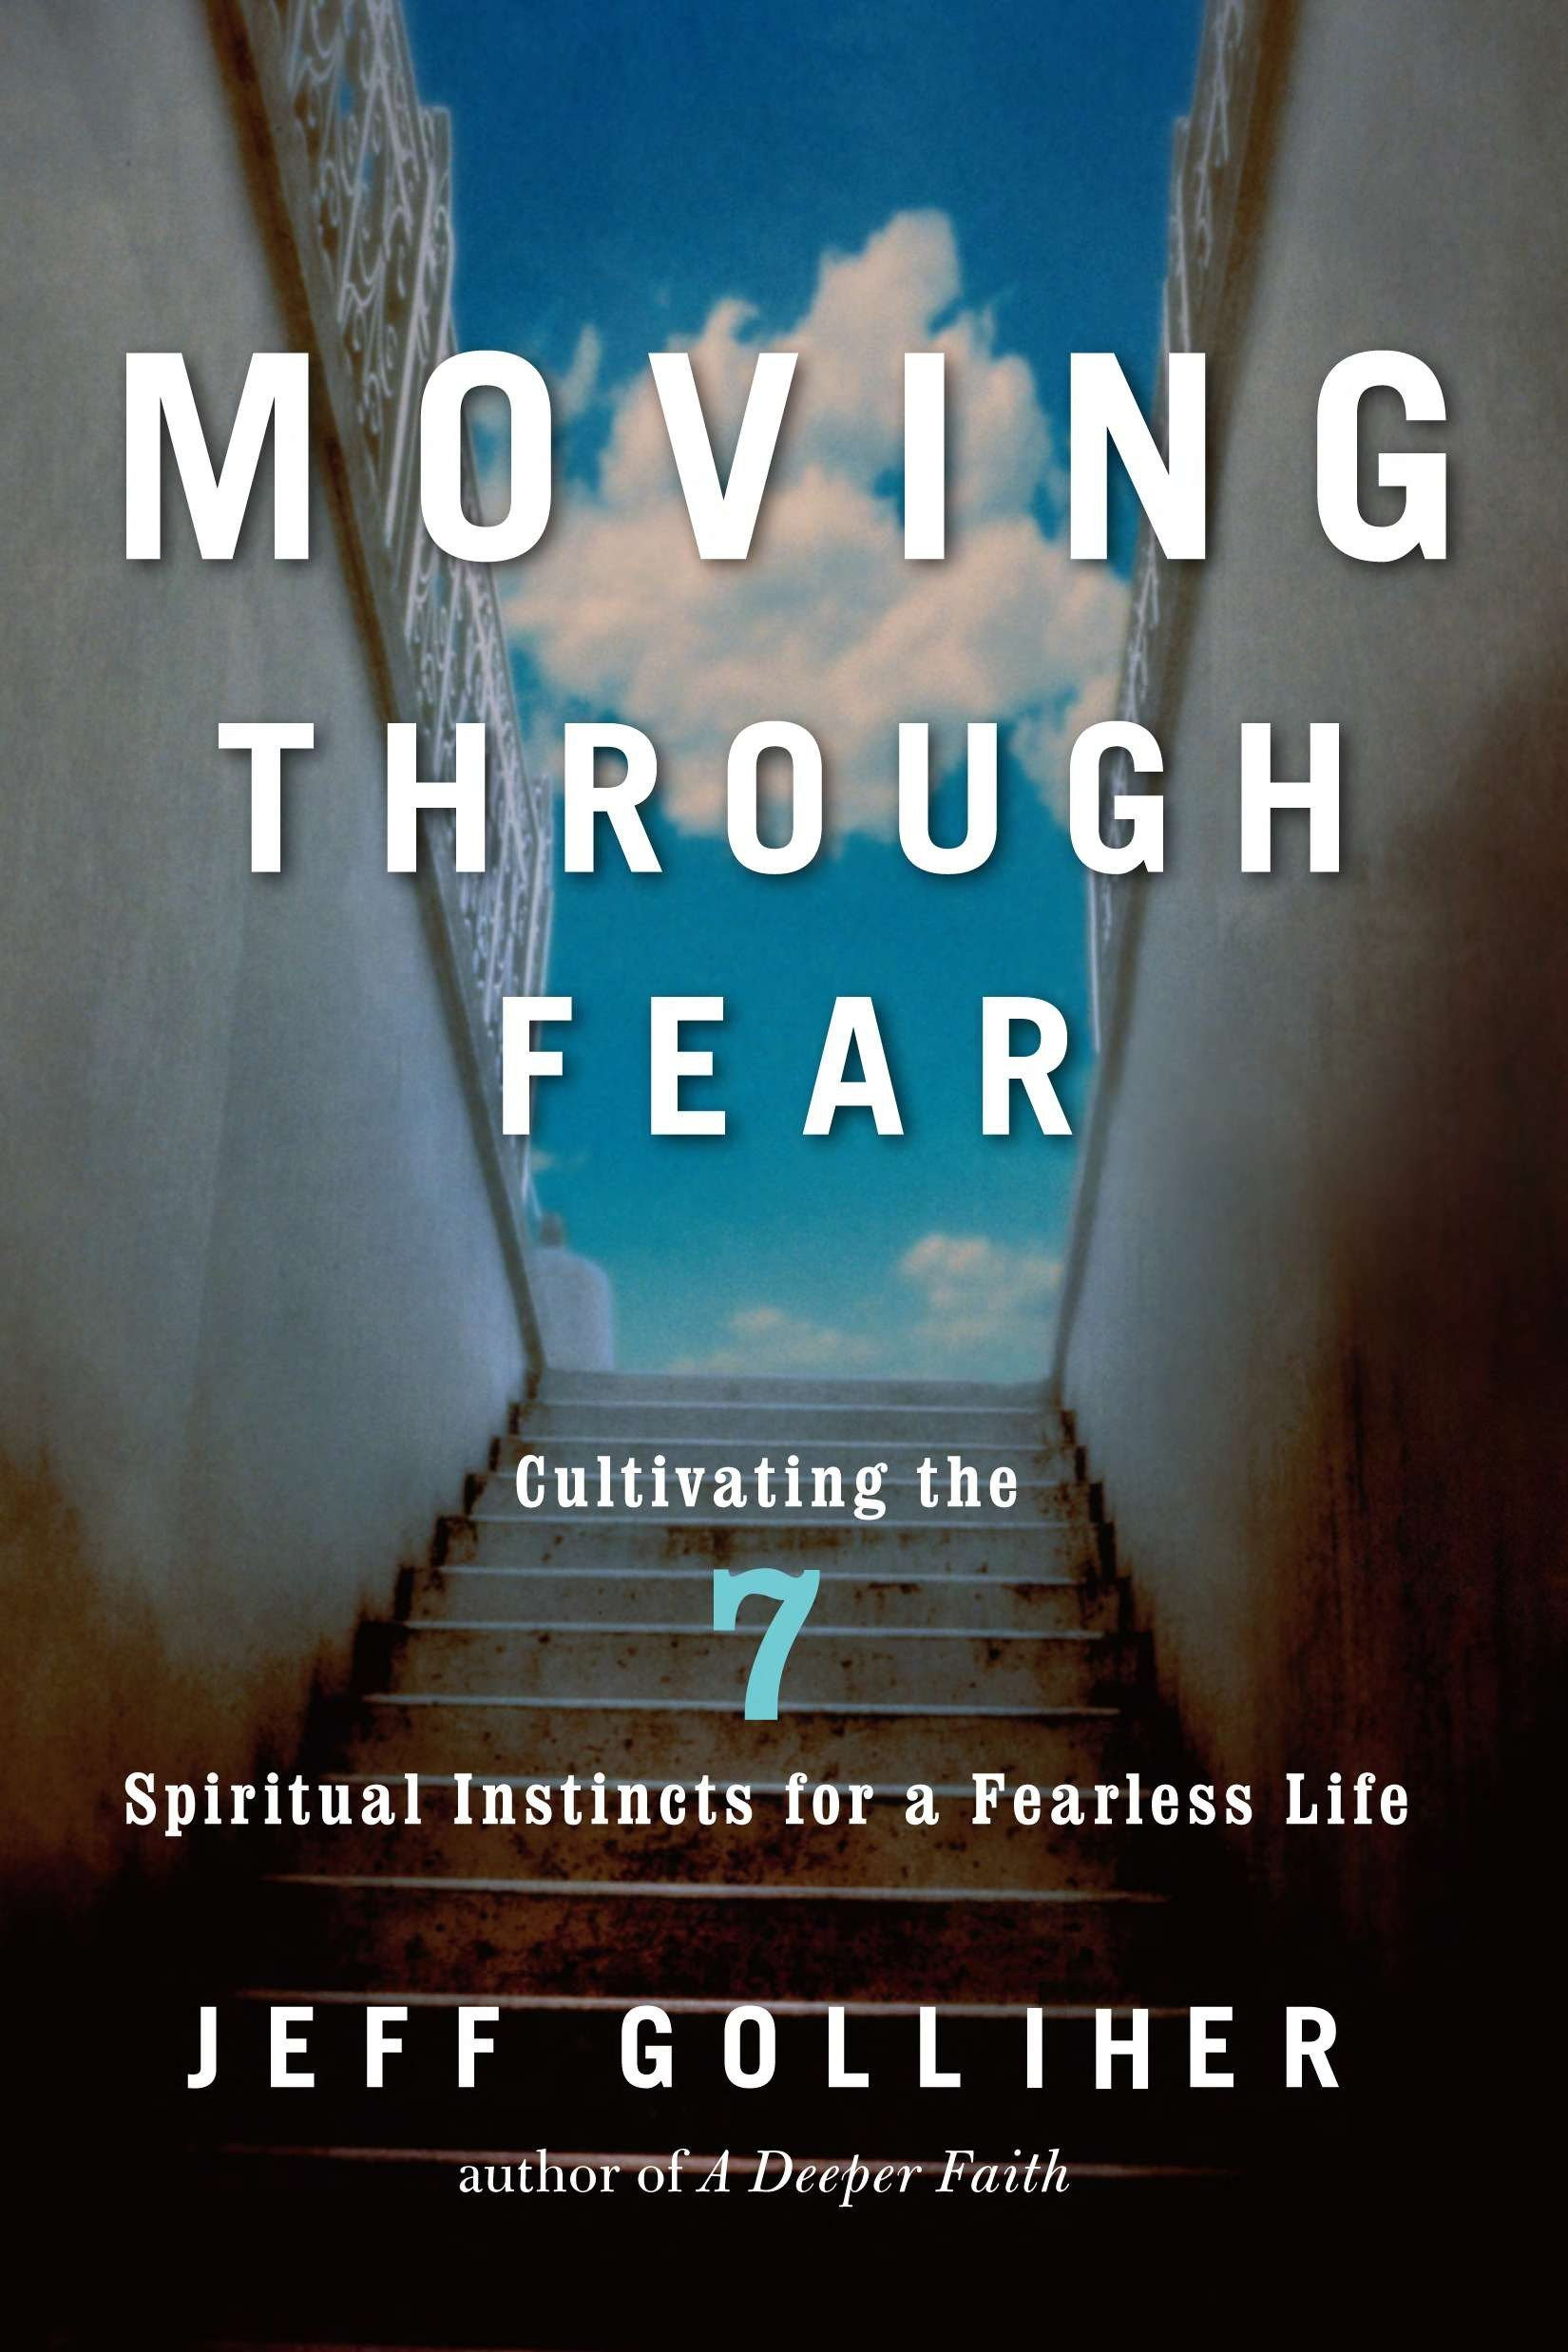 Moving Through Fear: Cultivating the 7 Spiritual Instincts for a Fearless Life PDF